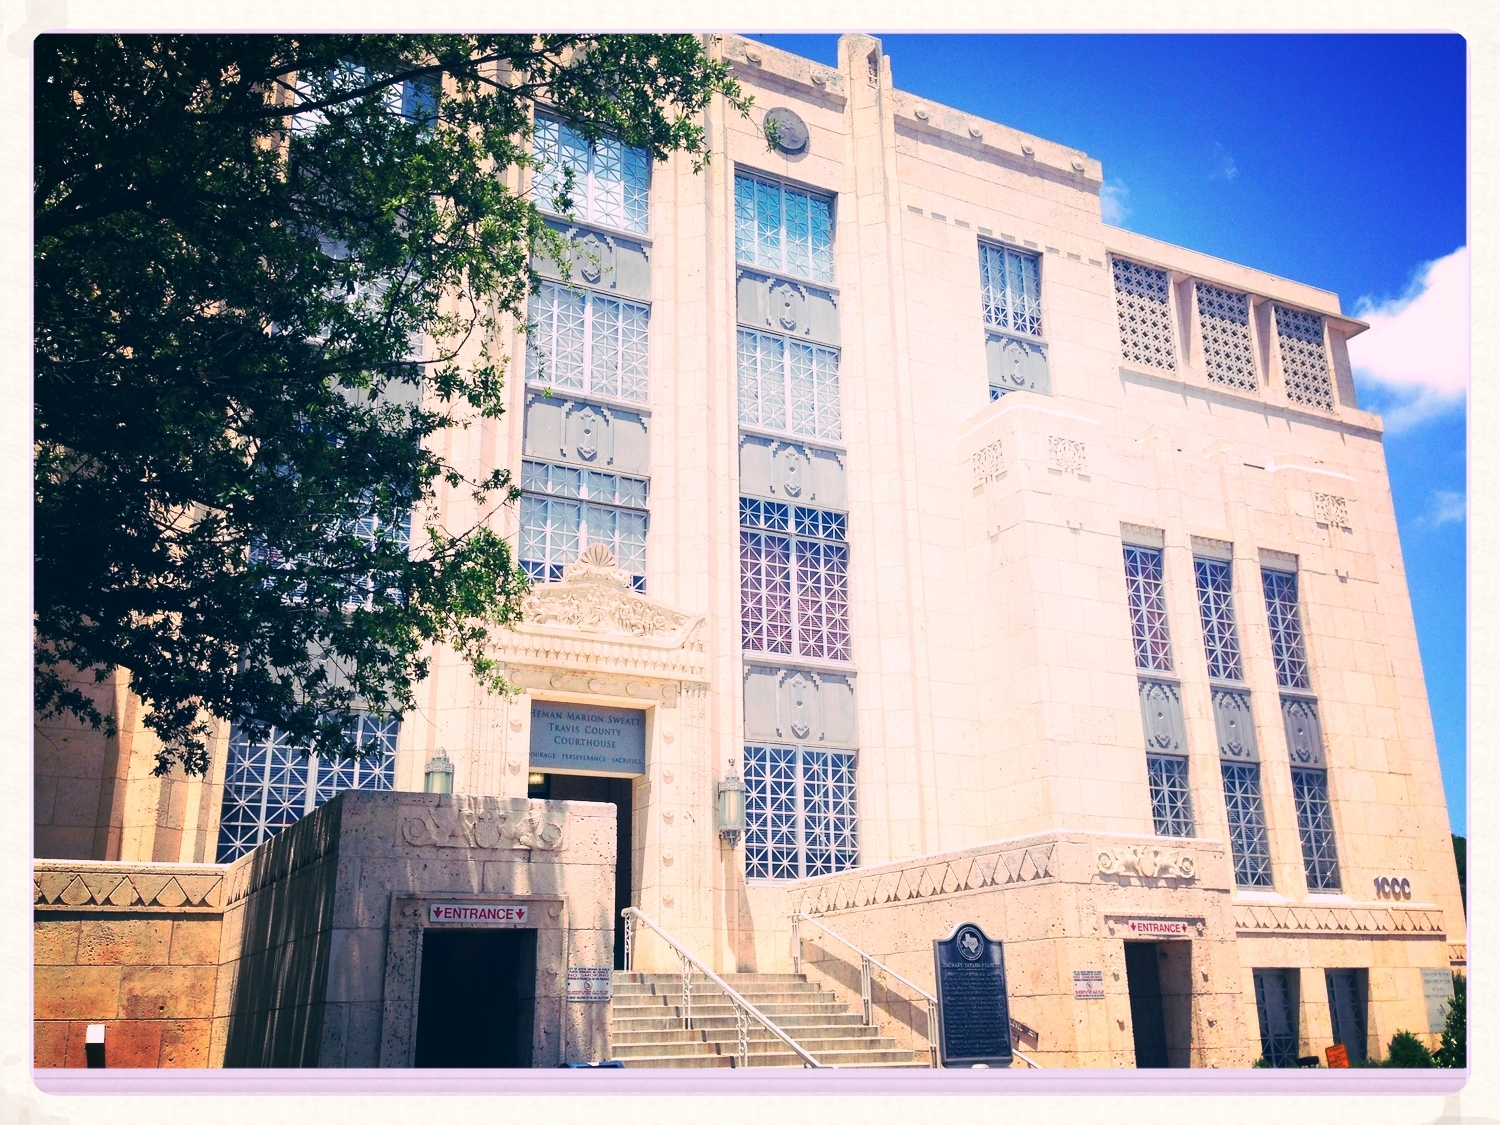 The Travis County Civil Courthouse.